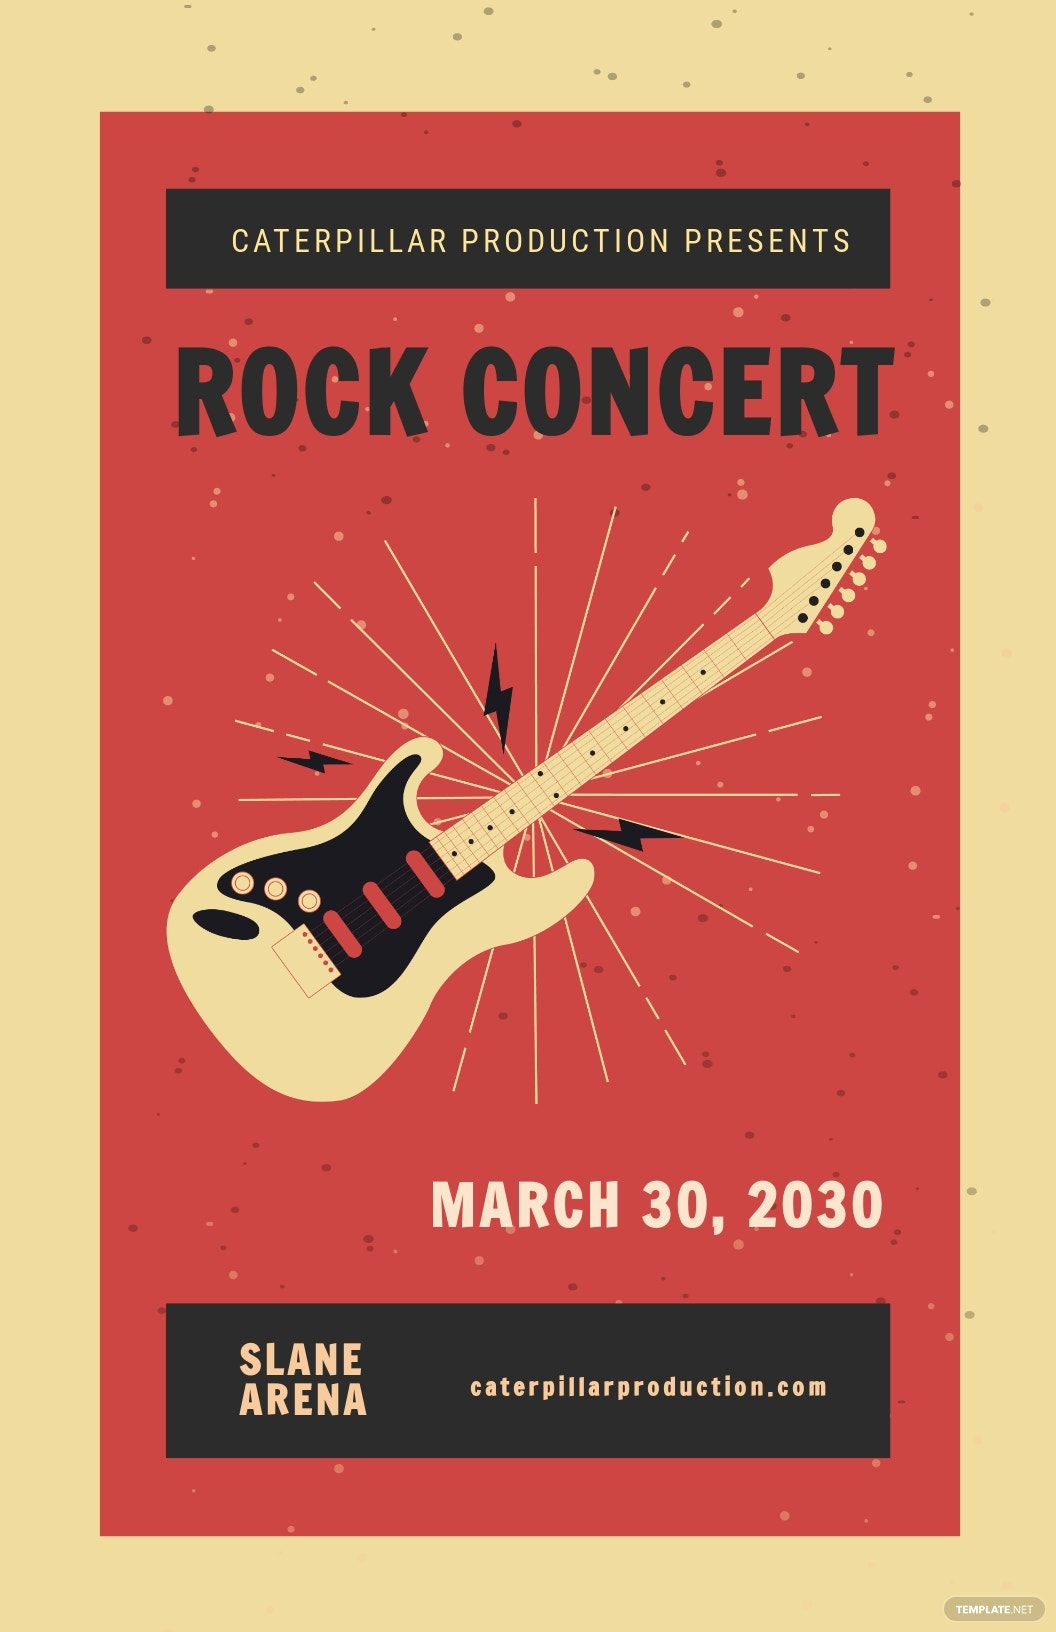 Live Rock Concert Poster Template